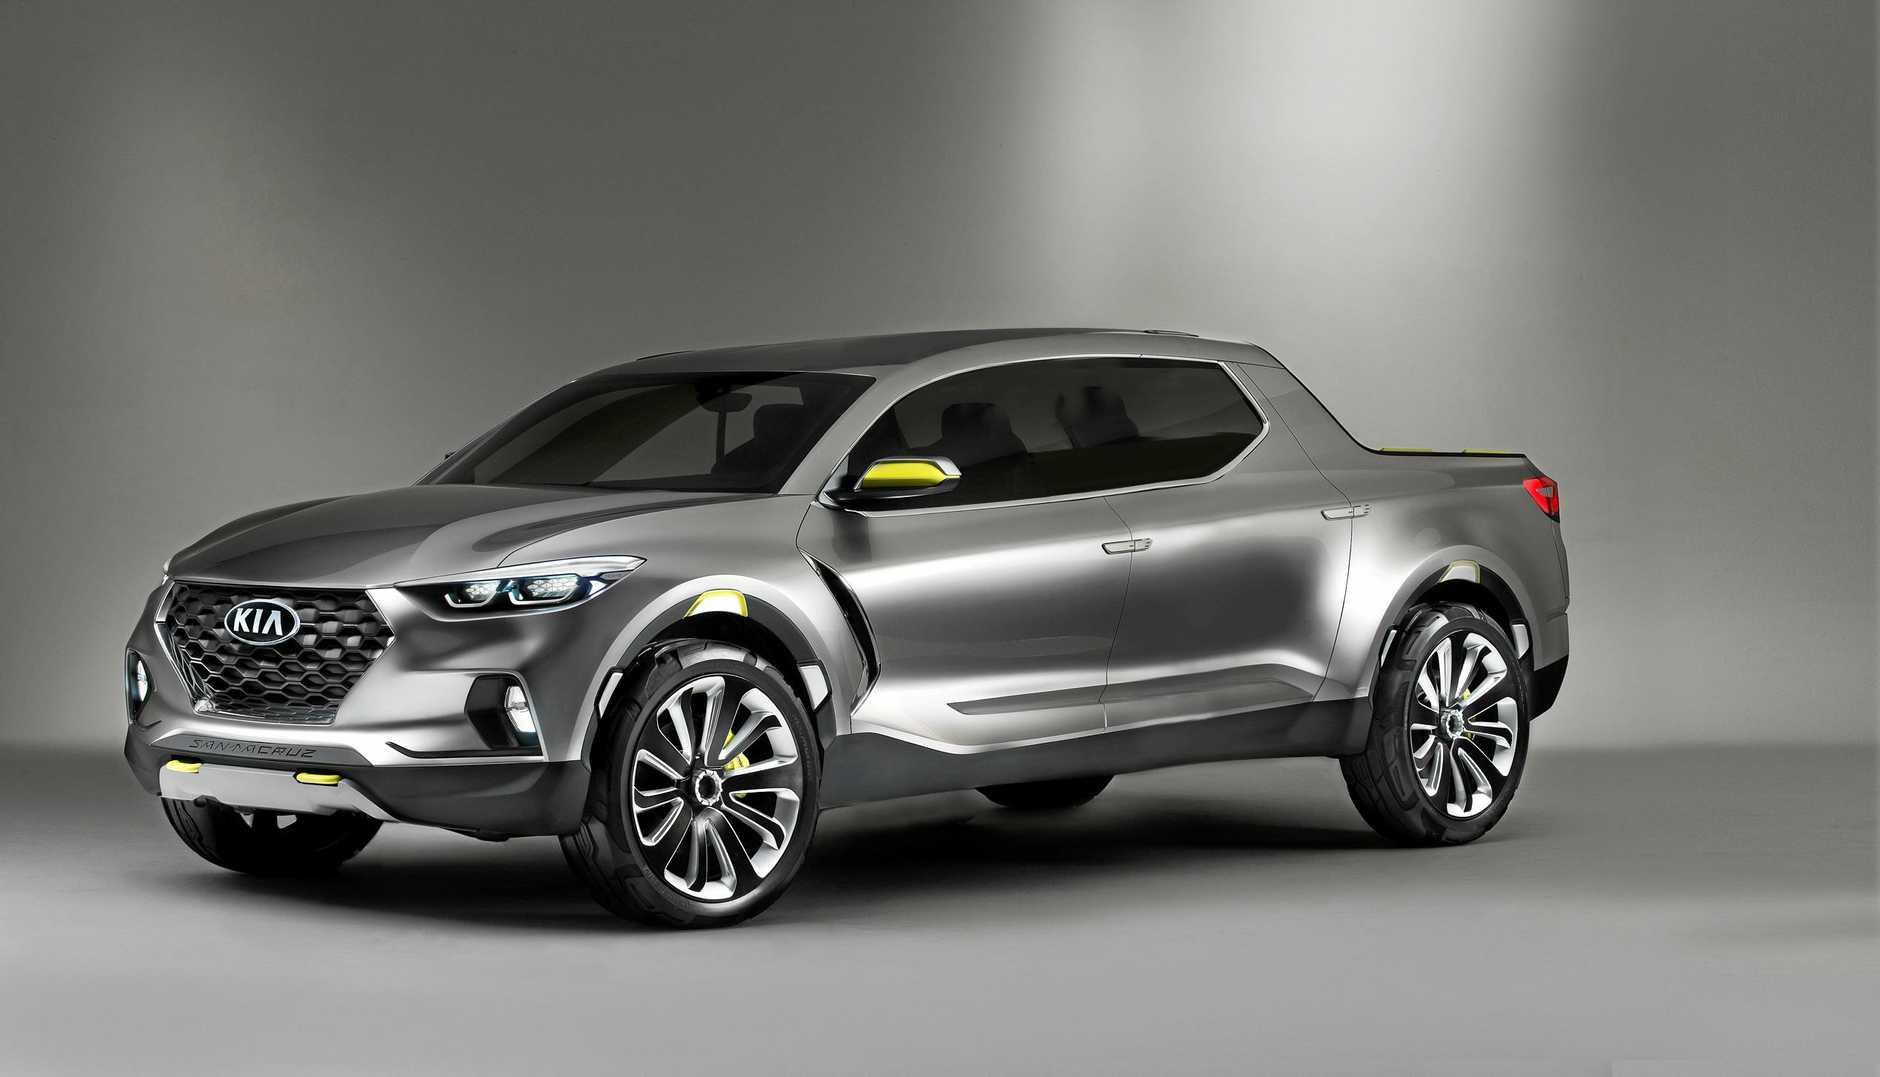 An artistic impression of a dual cab Kia ute, which will arrive in Australia by 2022 at the earliest.